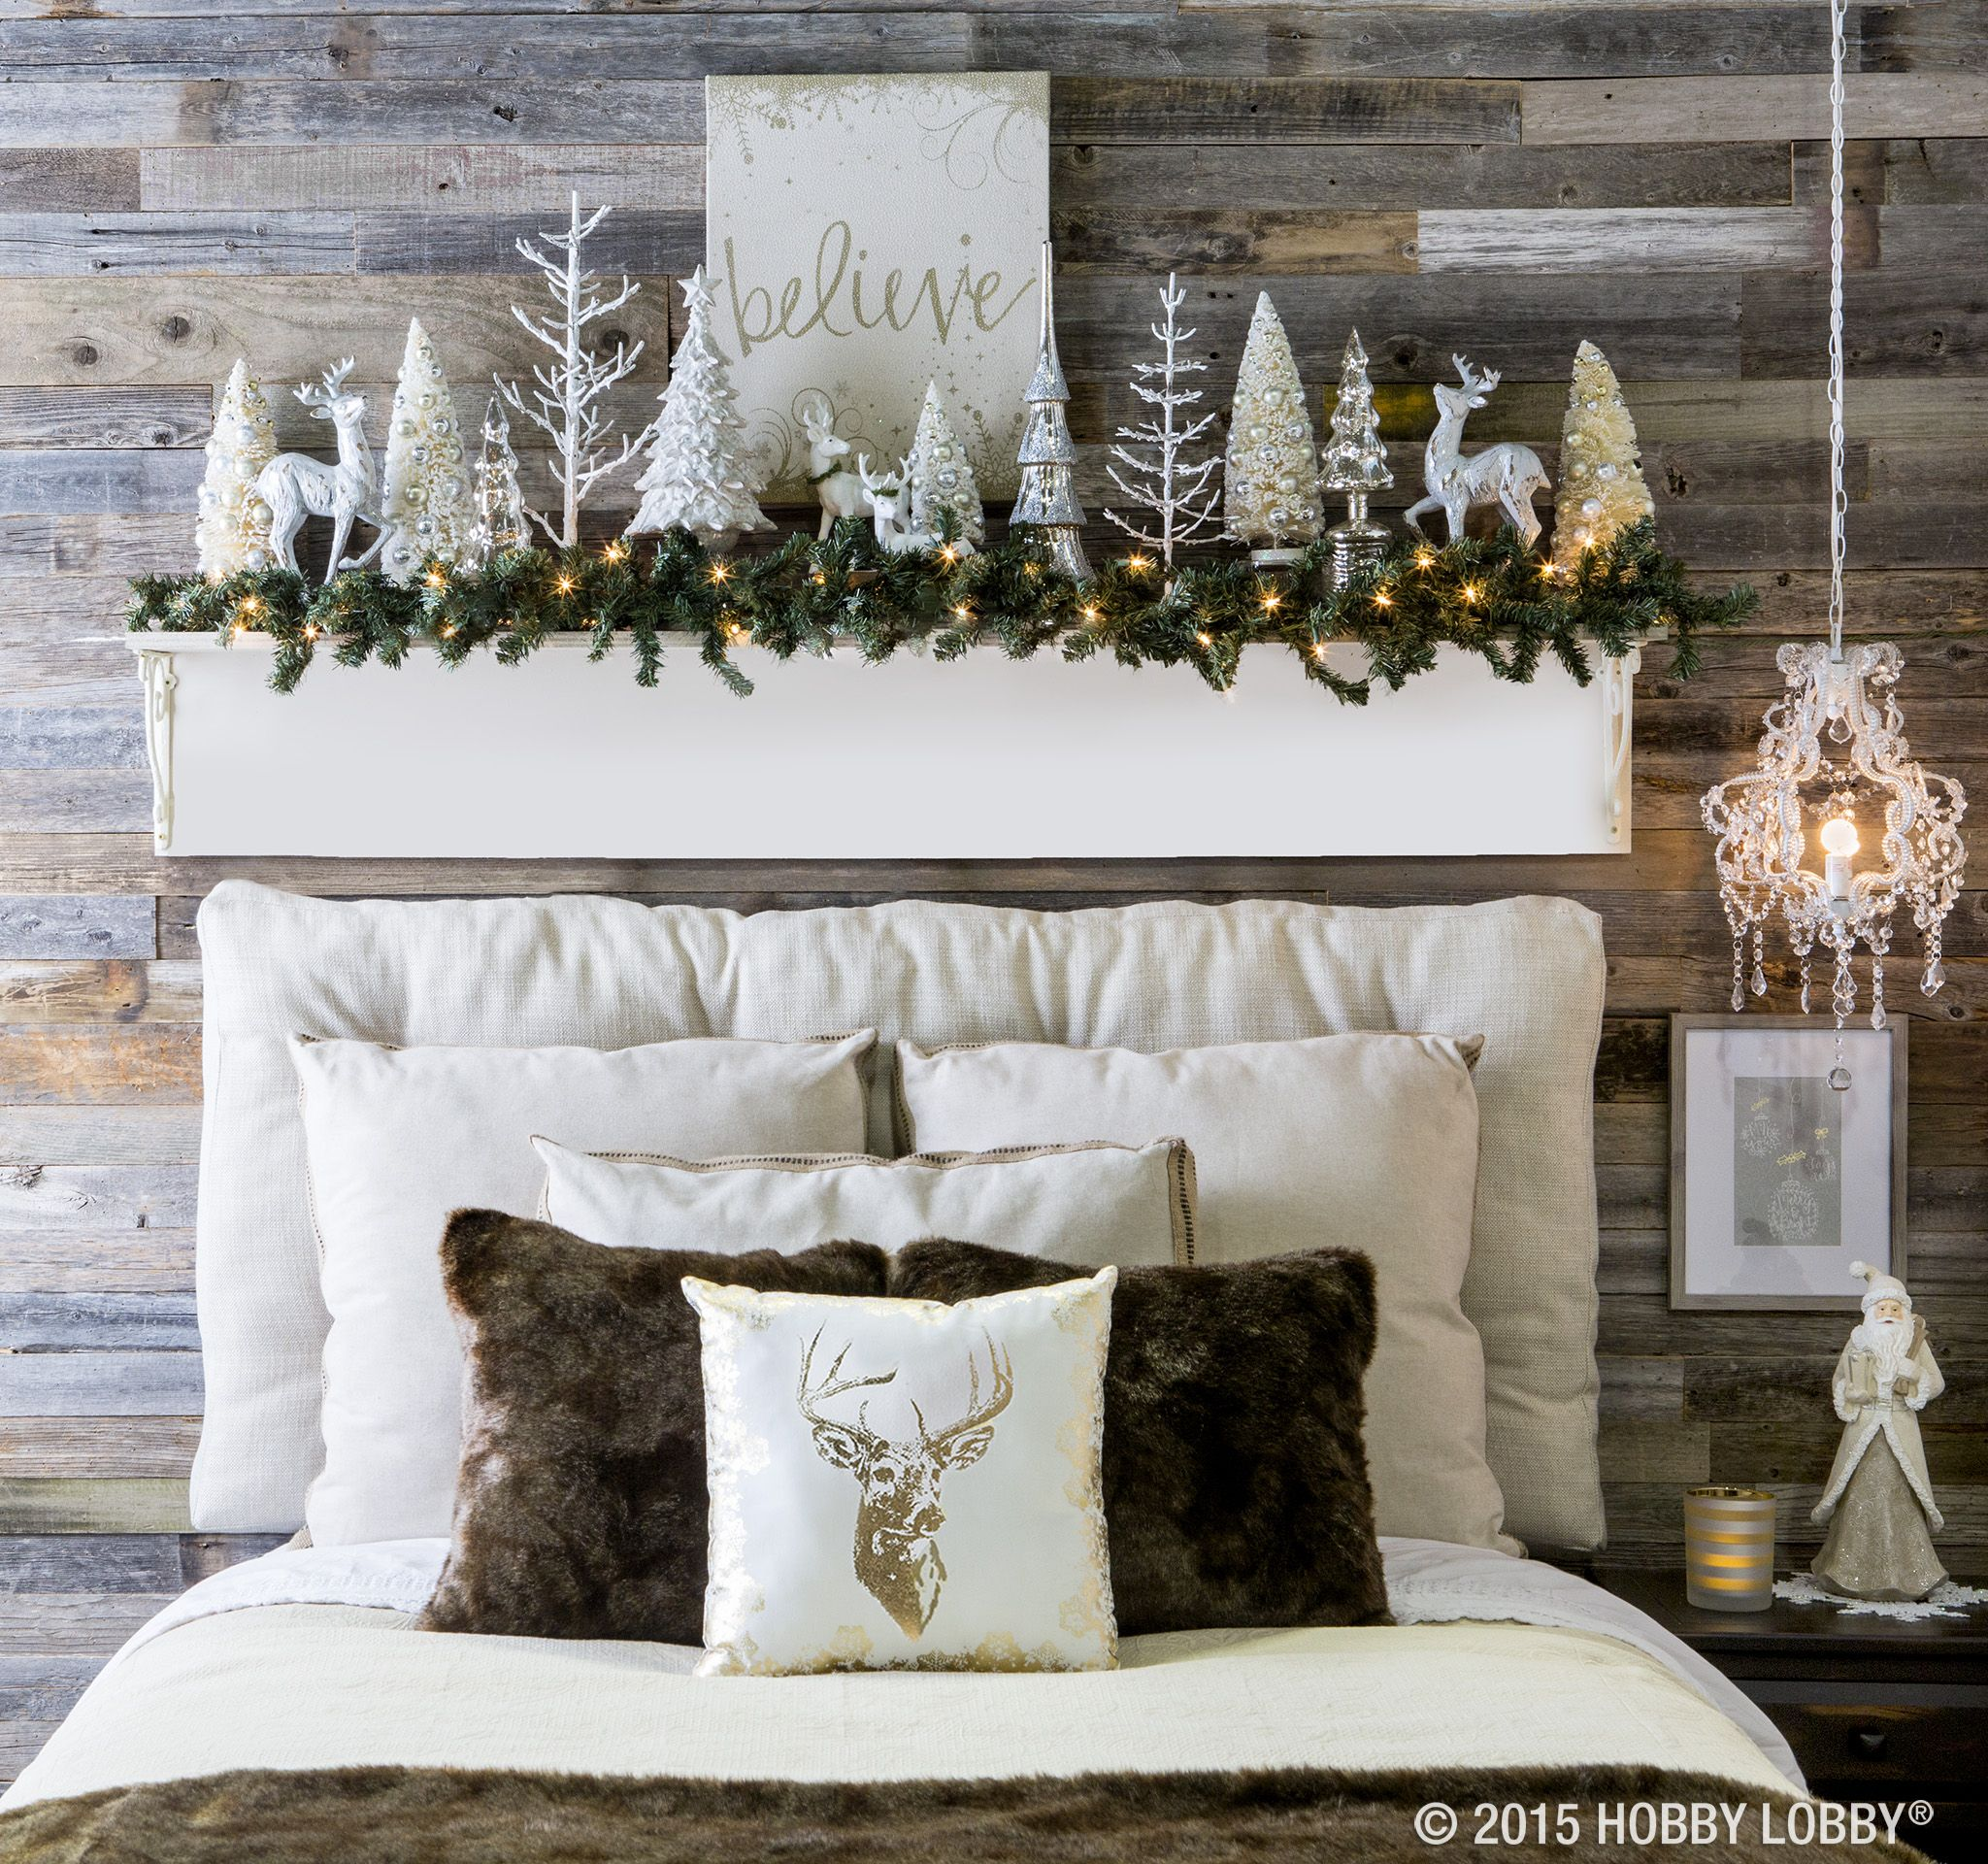 Glamour Home Decor Inspired By The Crisp Cool Mountain Air The Aspen Cove